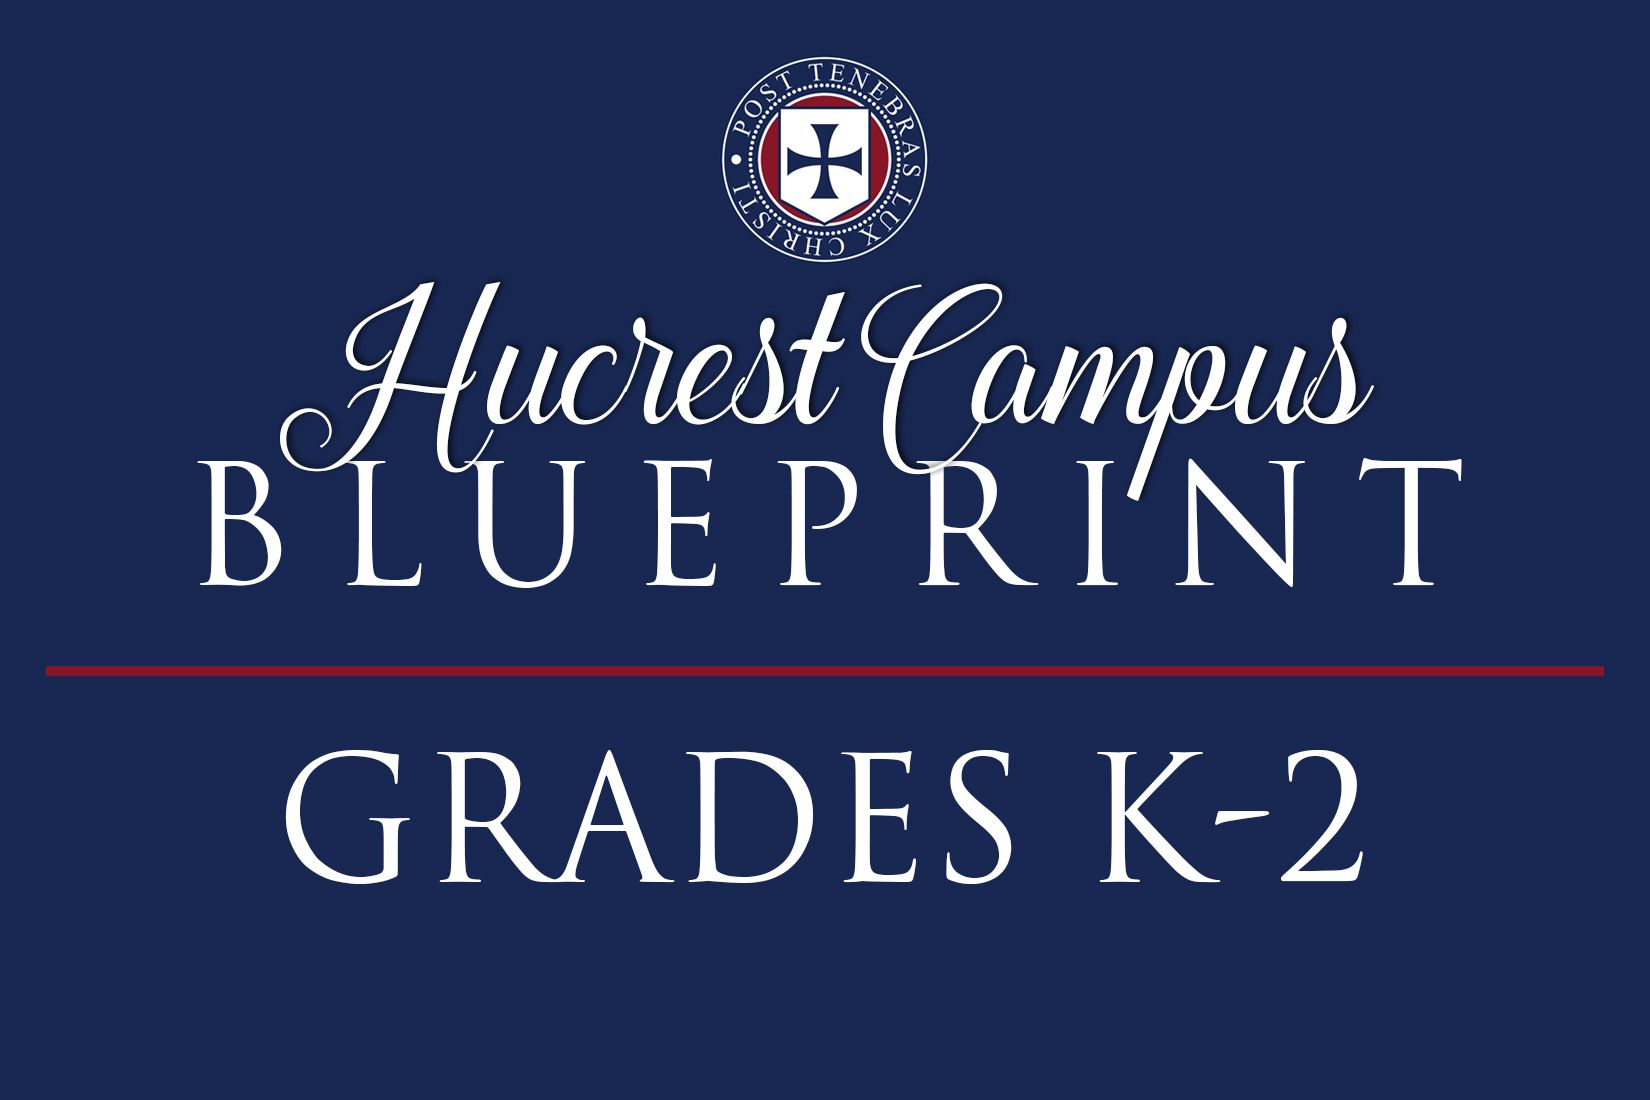 Reopening Blueprint: Hucrest Campus